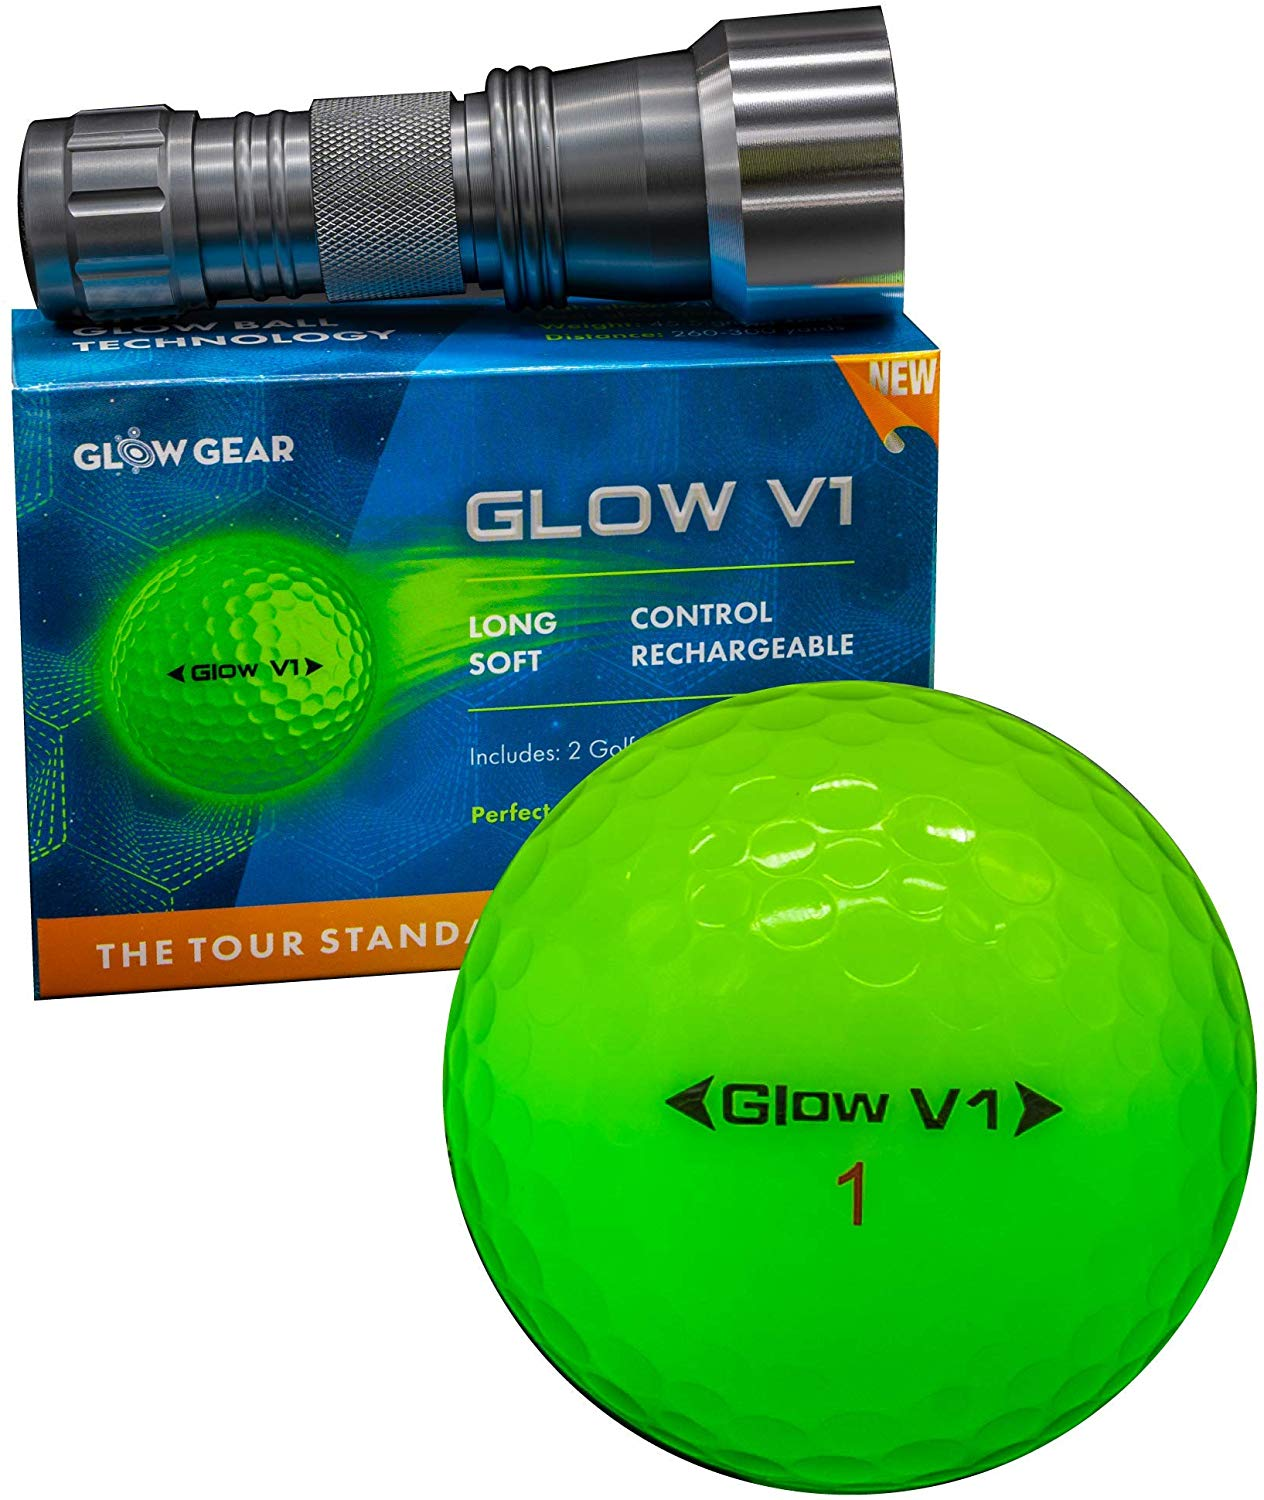 Ultra Bright Night Golf Balls by Glowgear Review